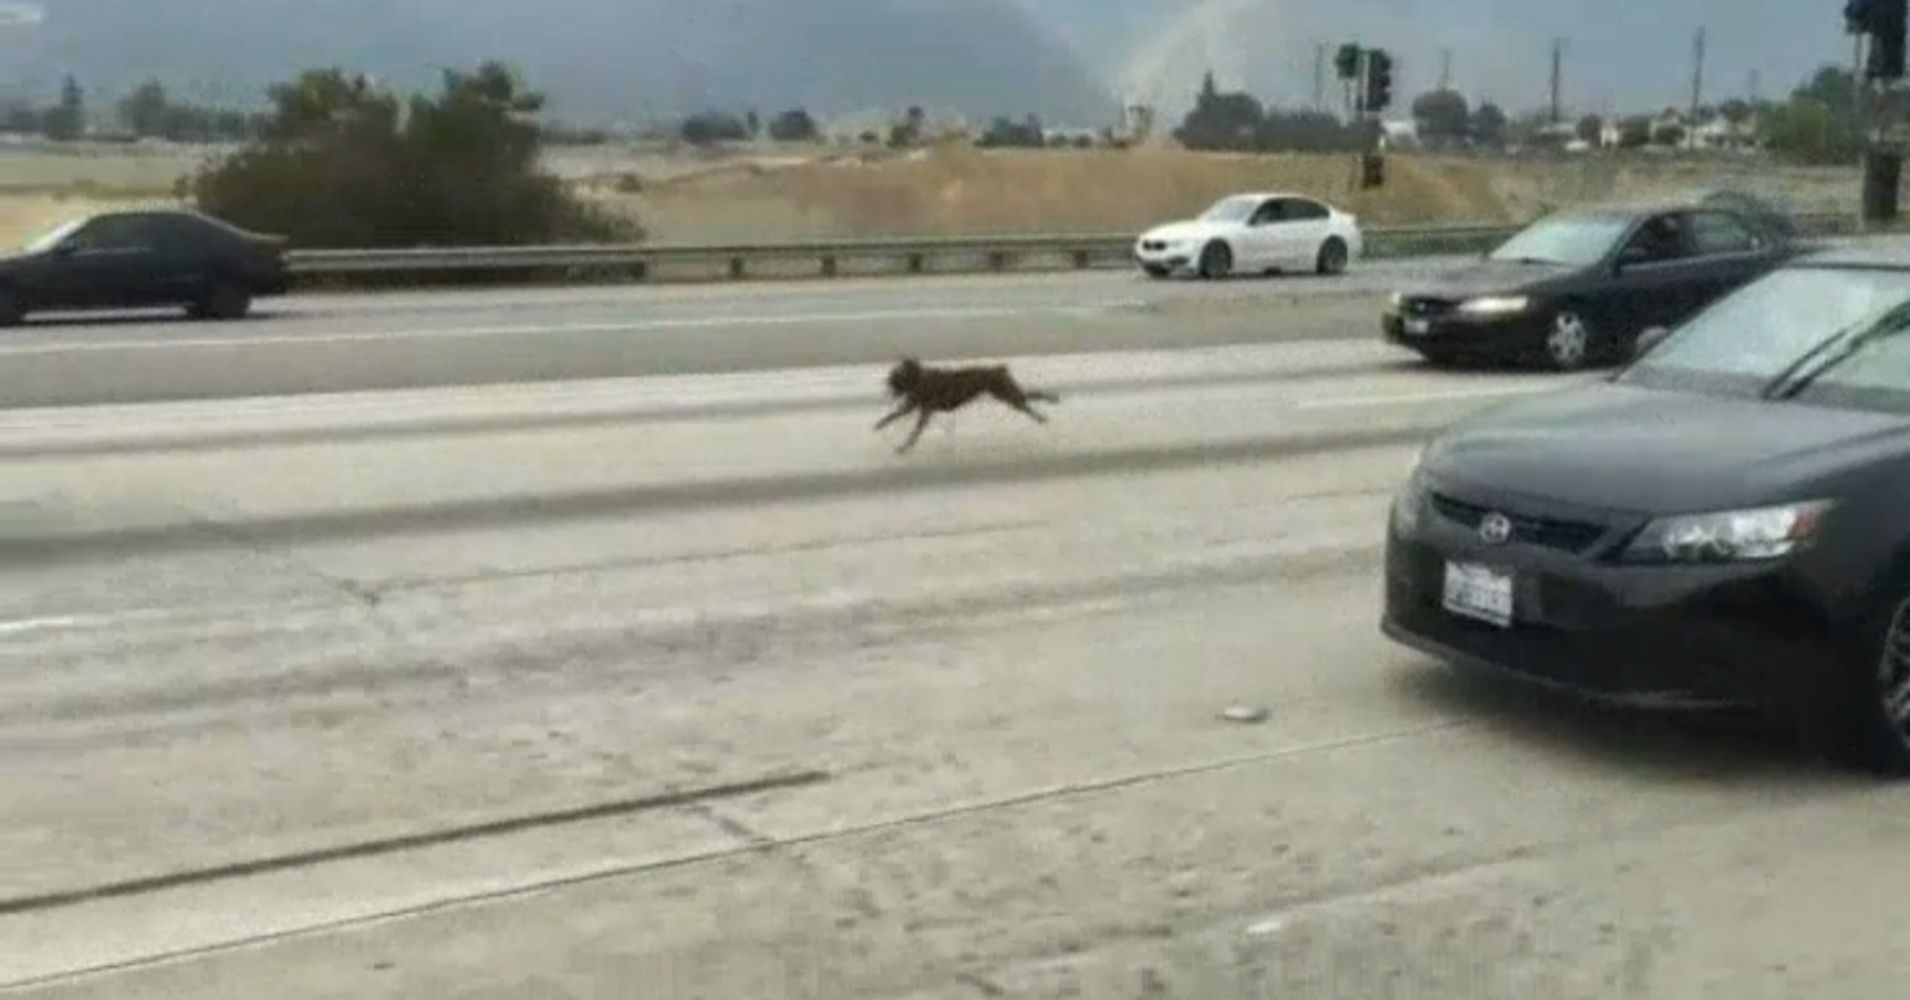 Watch Heroic Drivers Rescue 2 Scared Dogs Dashing Down Freeway